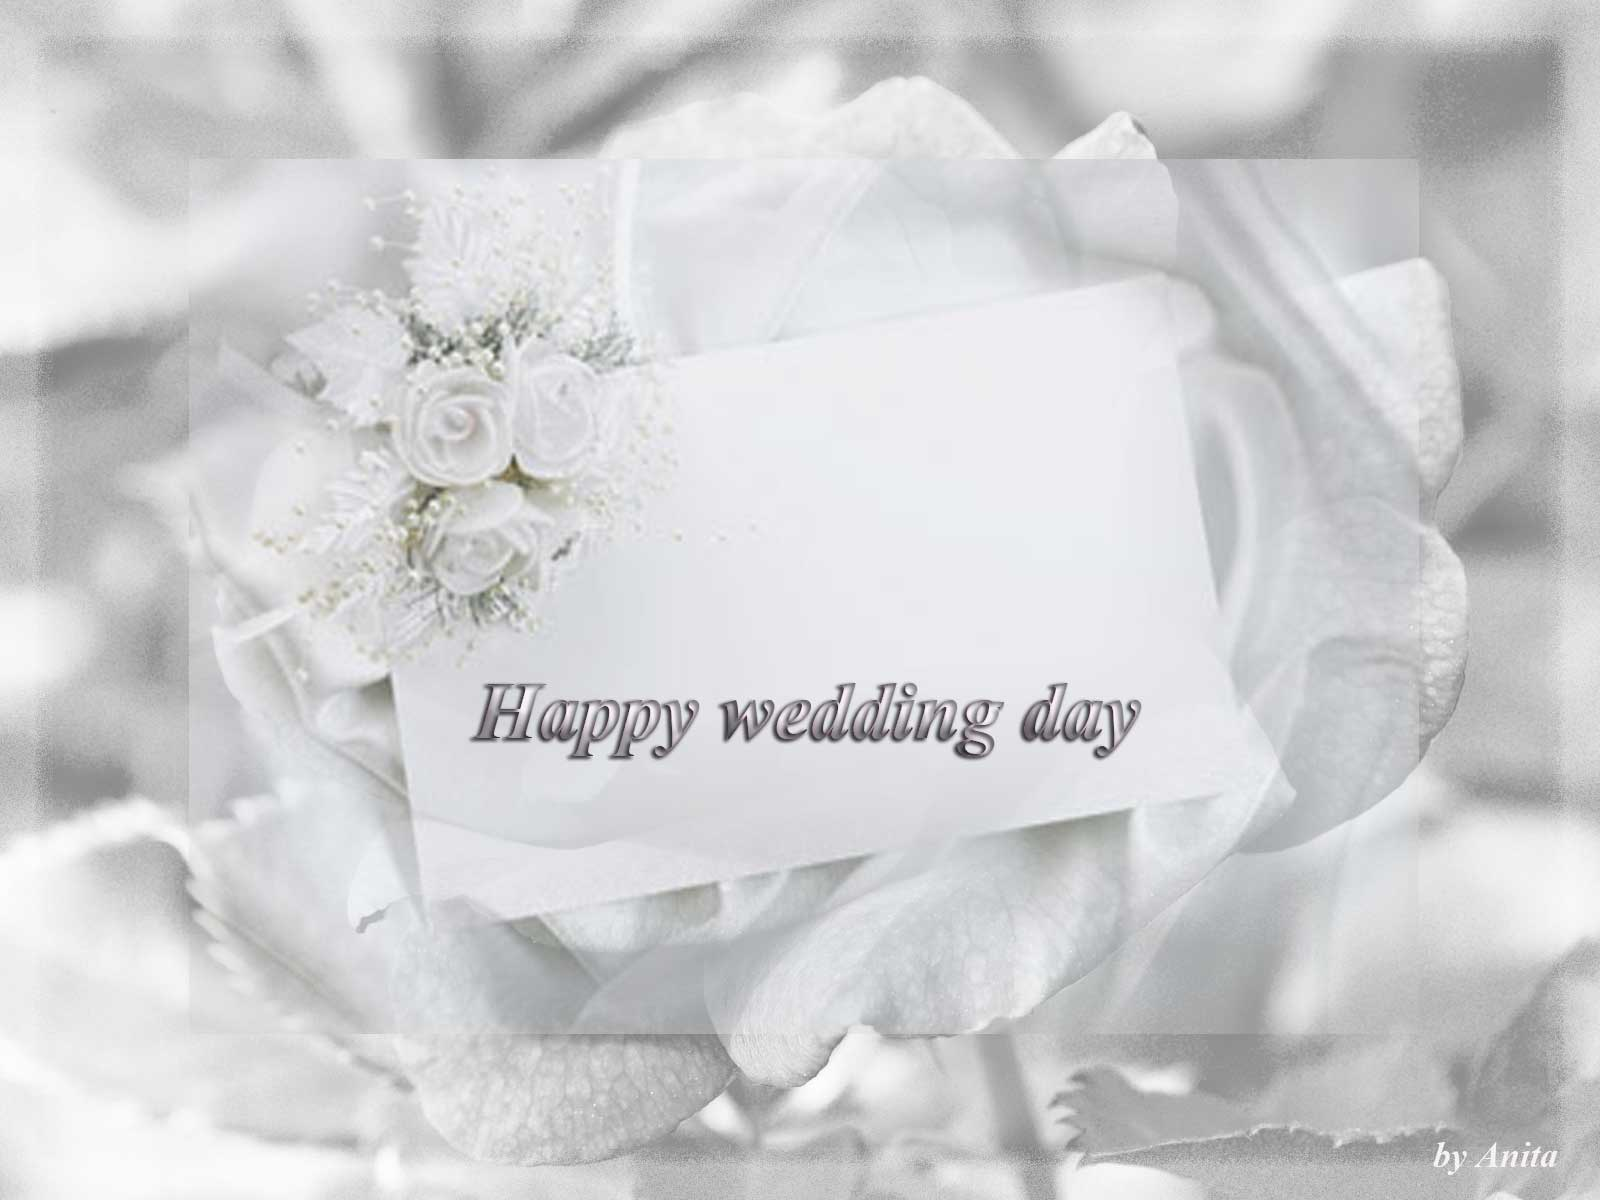 Tamil Quotes Wallpaper Hd Download Happy Wedding Day Wallpaper Gallery